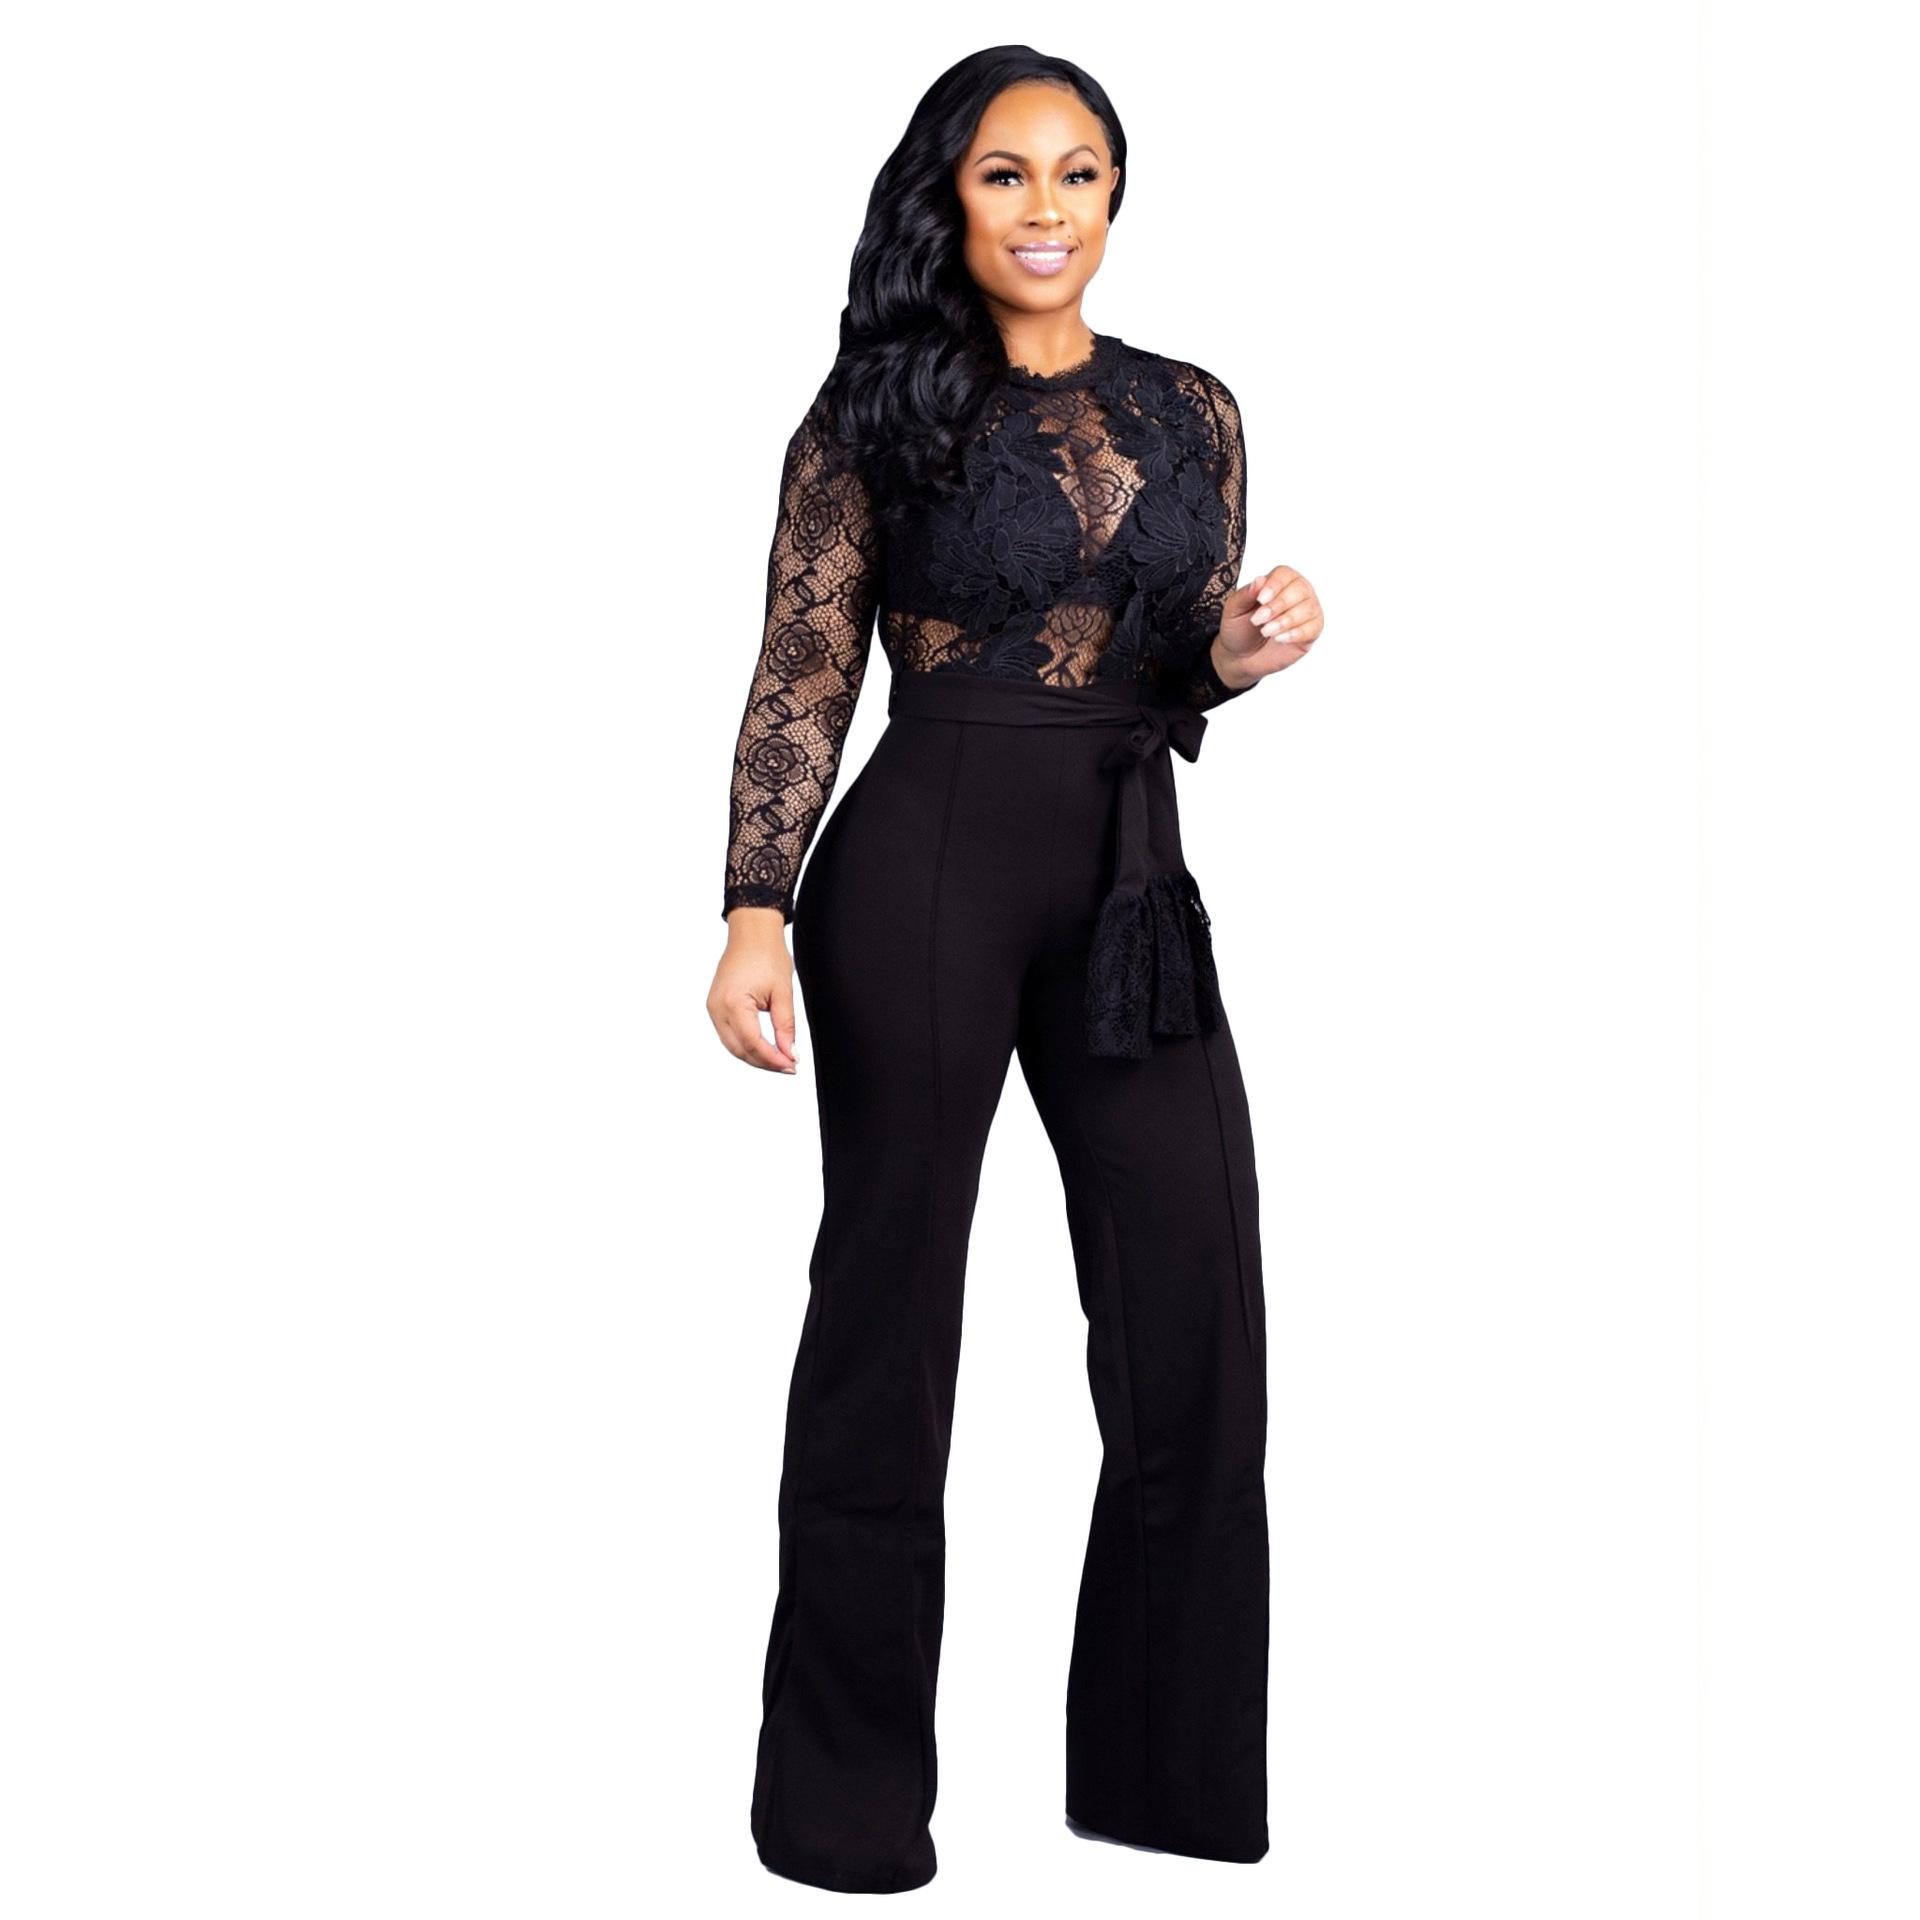 Women Sheer Lace Jumpsuits Rompers High Waist With Belt O Neck Long Sleeve Night Club Wide Leg Pants Overalls Playsuits